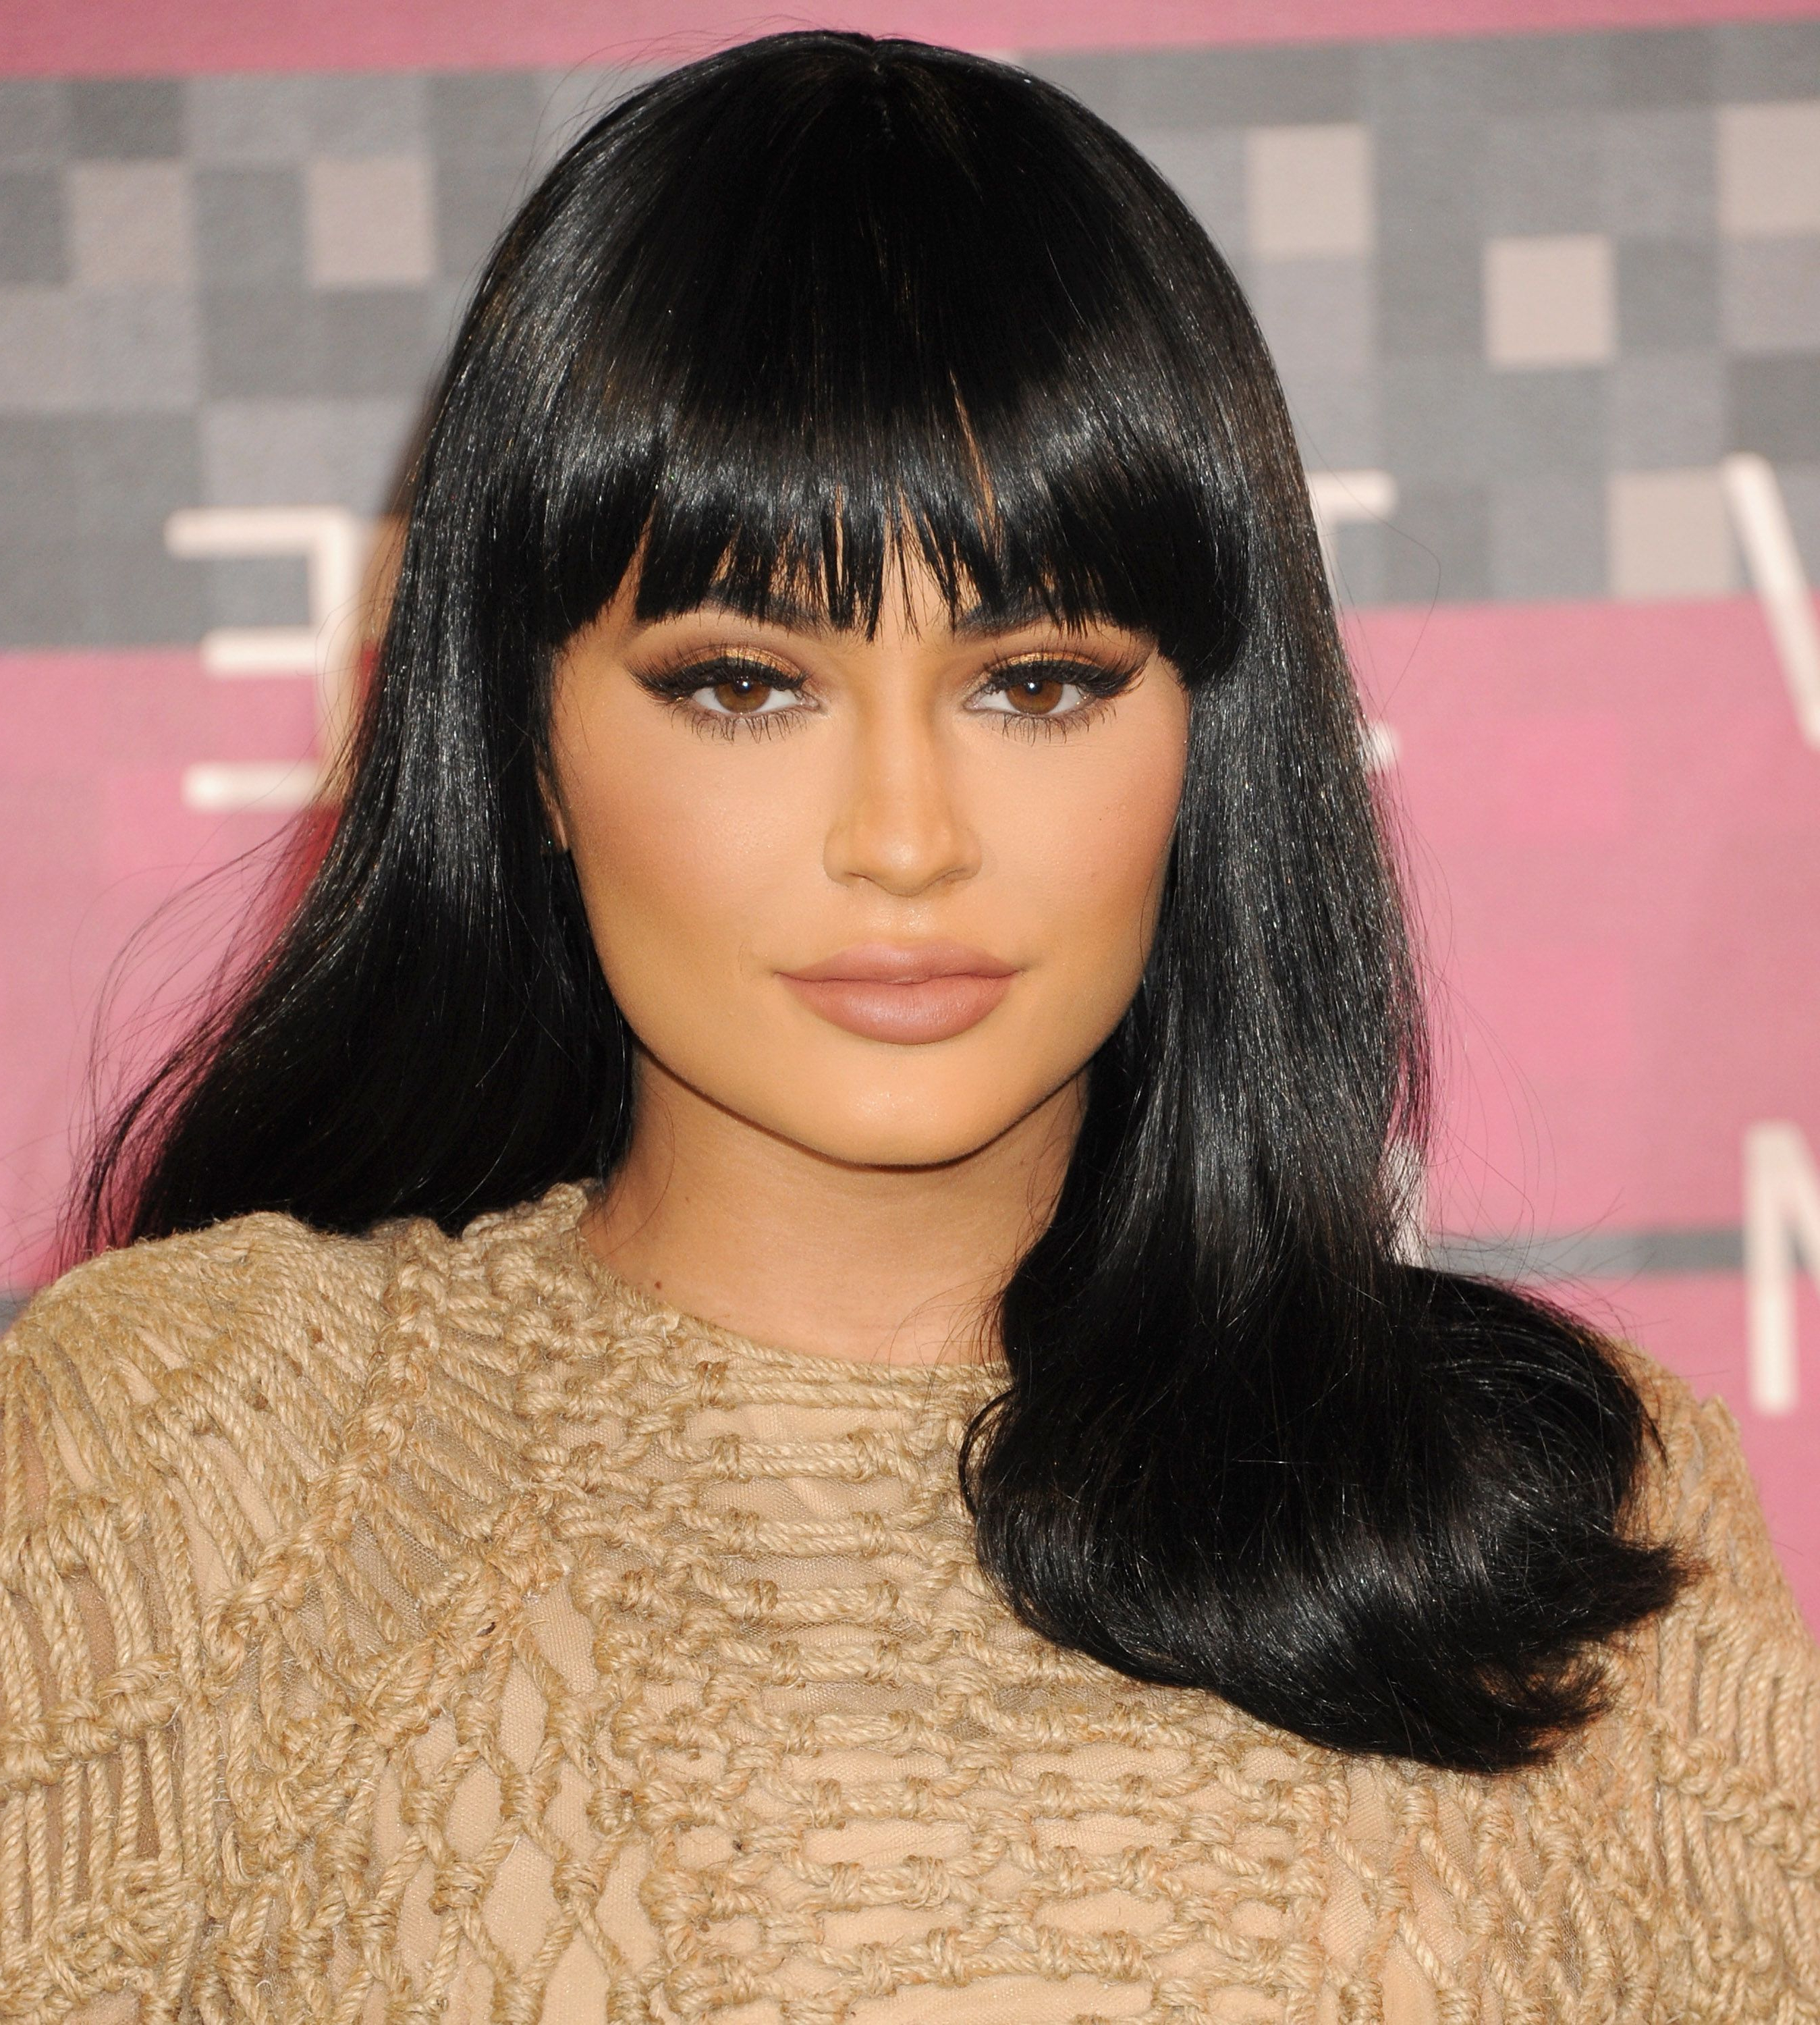 50 Best Kylie Jenner Hair Looks – The Best Hairstyles Of Kylie Jenner Throughout Kylie Jenner Short Haircuts (View 2 of 25)